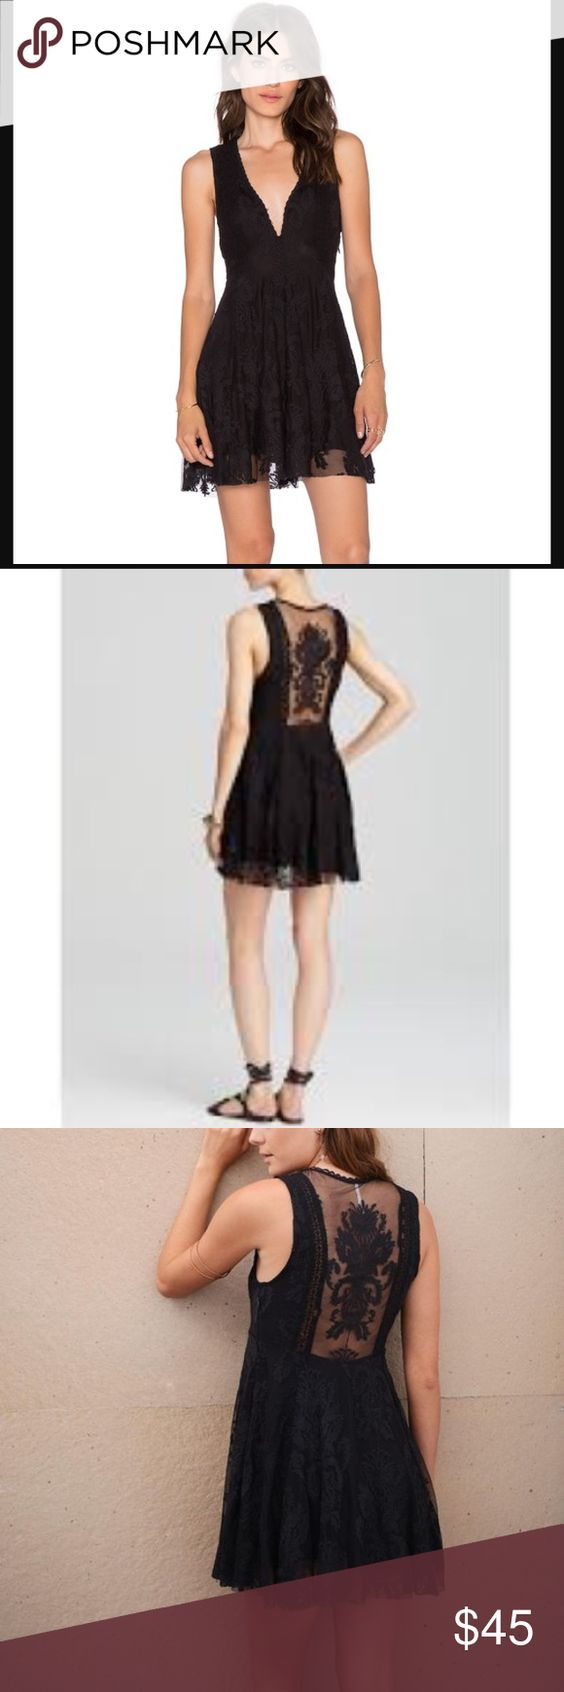 Free people reign over me black sleeveless dress 0 Little black dress with a lace sheer back 😍 I love this dress but I have 2 so I decided to let one go! Great condition. It has 2 clip closures in the front so if you want to be daring then you can leave it open 😉 Free People Dresses Mini